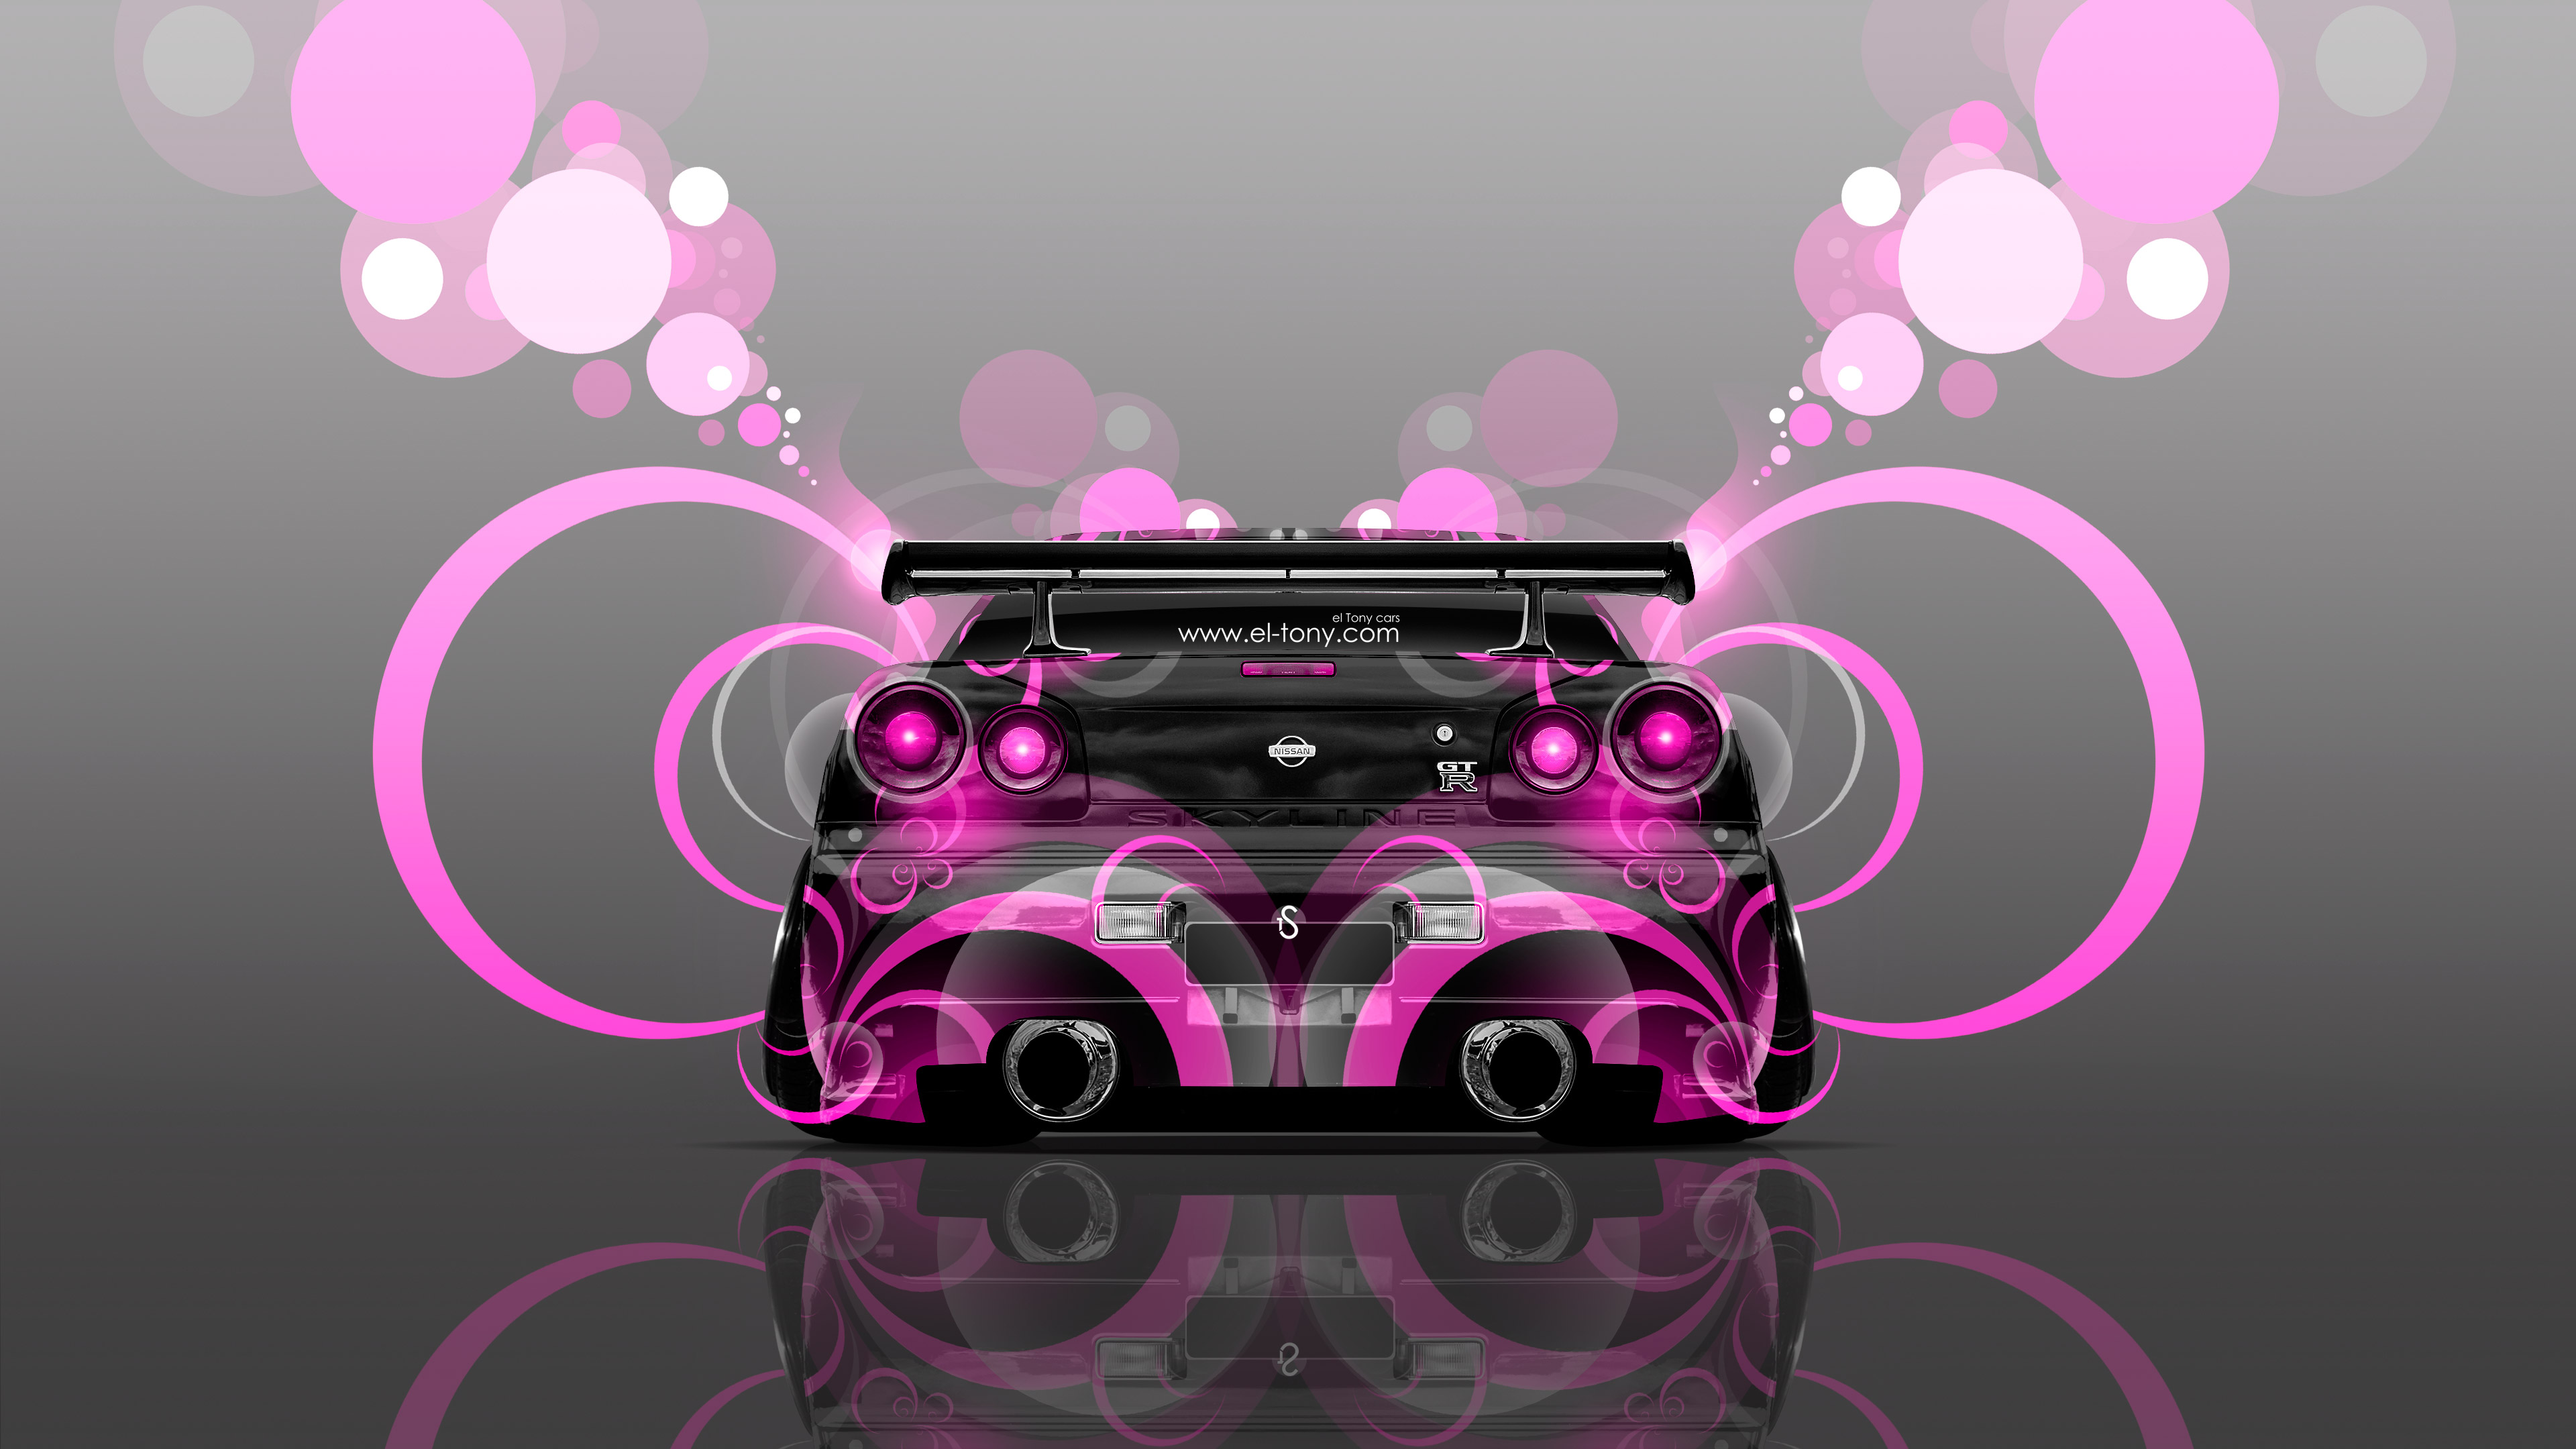 N C Bcrb as well R Gtr Y Carbon Centre Console likewise Nissan Gtr Concept Crystal City Car Green Neon Hd Wallpapers Design By Tony Kokhan   El Tony furthermore Aea B F Bcaf Db E C as well Eb E C B. on nissan skyline gtr r35